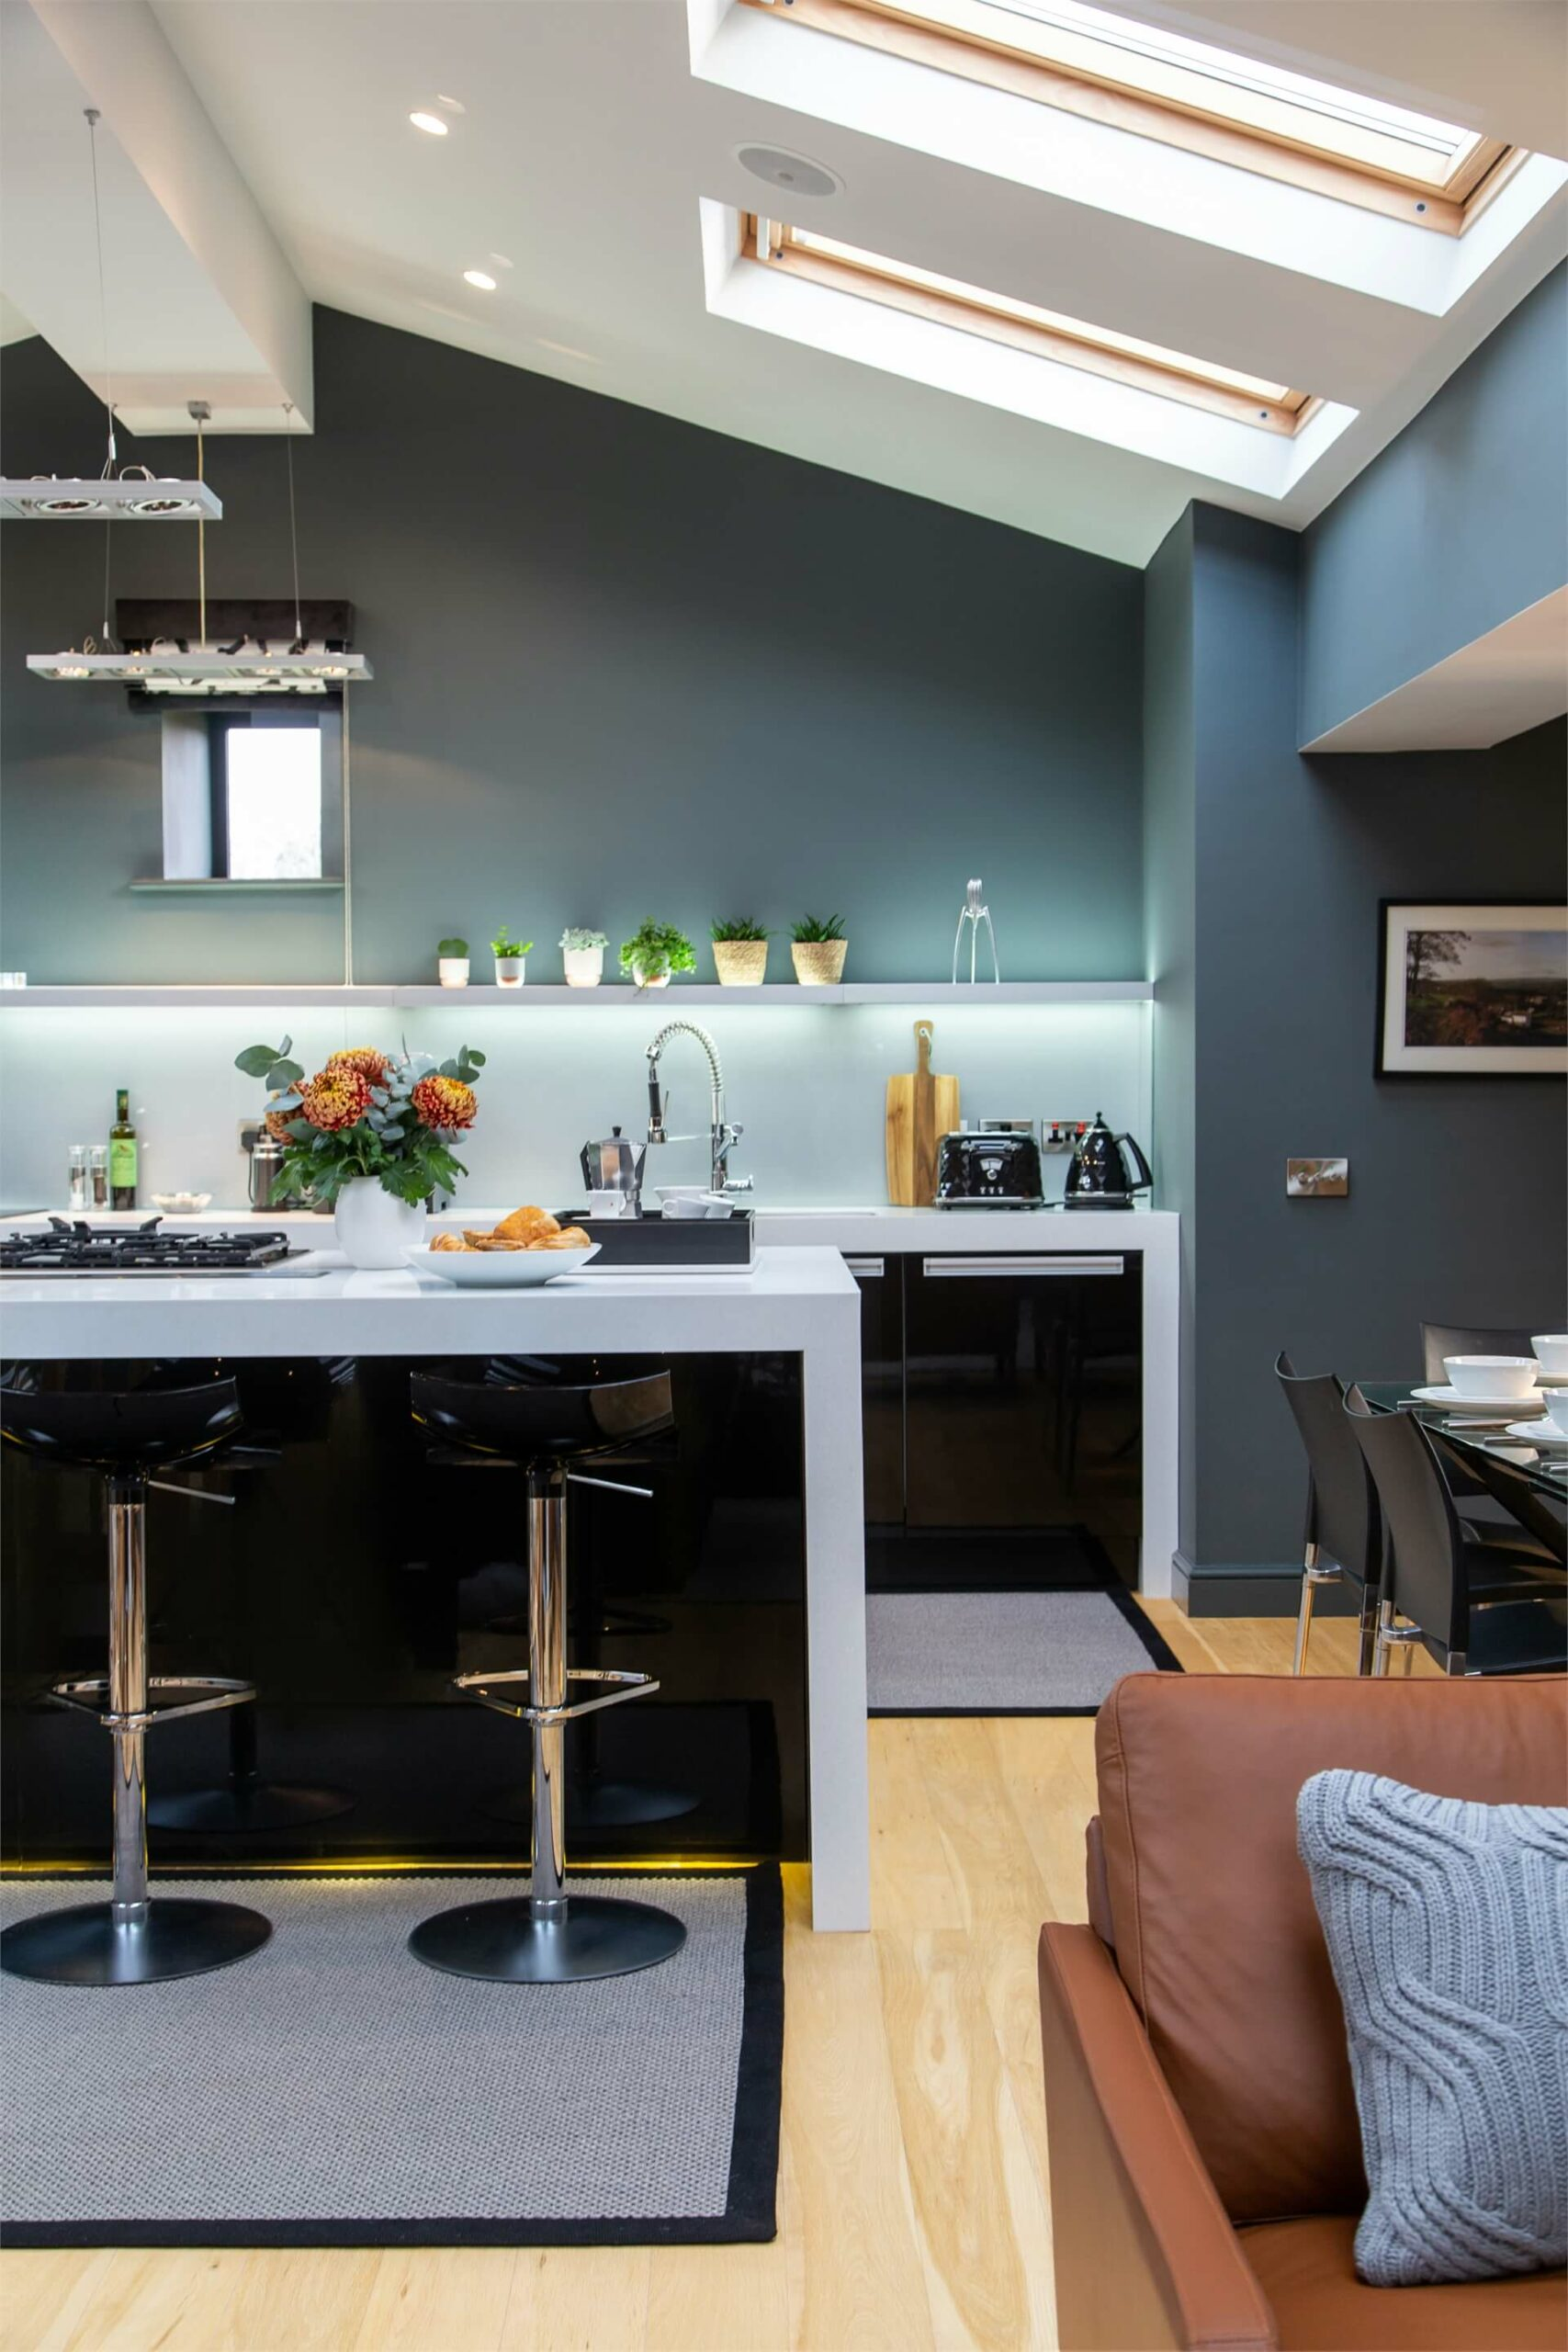 This open plan kitchen and dining area are great for socialising